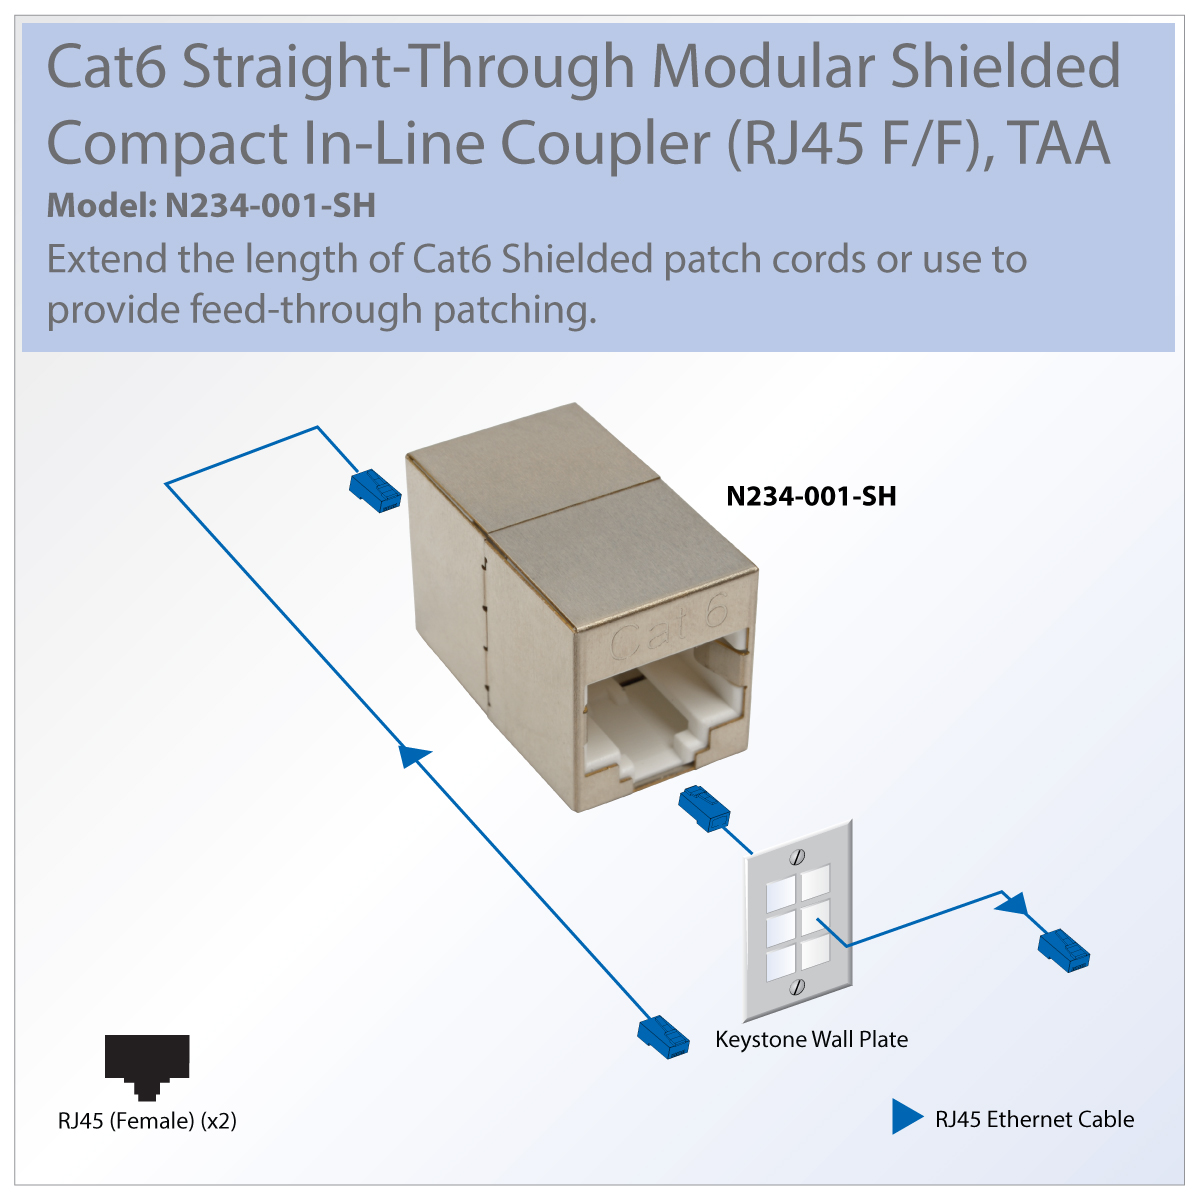 rj45 inline coupler wiring diagram tripp lite cat6 straight through modular shielded compact in line  tripp lite cat6 straight through